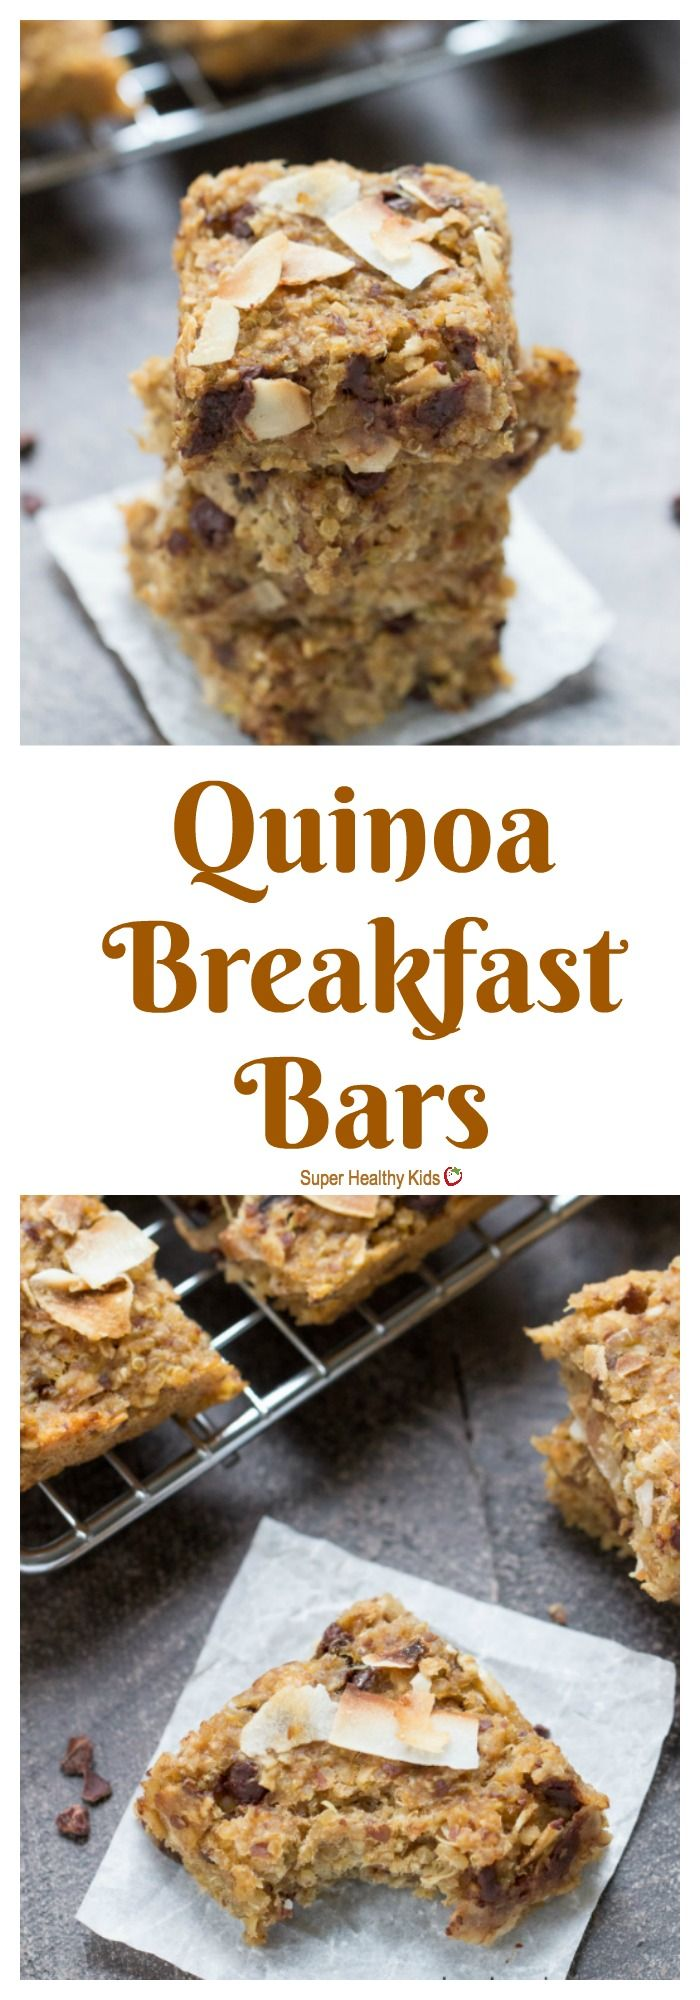 FOOD - Quinoa Breakfast Bars. These simple quinoa breakfast bars are flavored with toasted coconut and chocolate chips, making for a healthy and delicious on-the-go breakfast treat that you and your kids will love! http://www.superhealthykids.com/simple-quinoa-breakfast-bars/